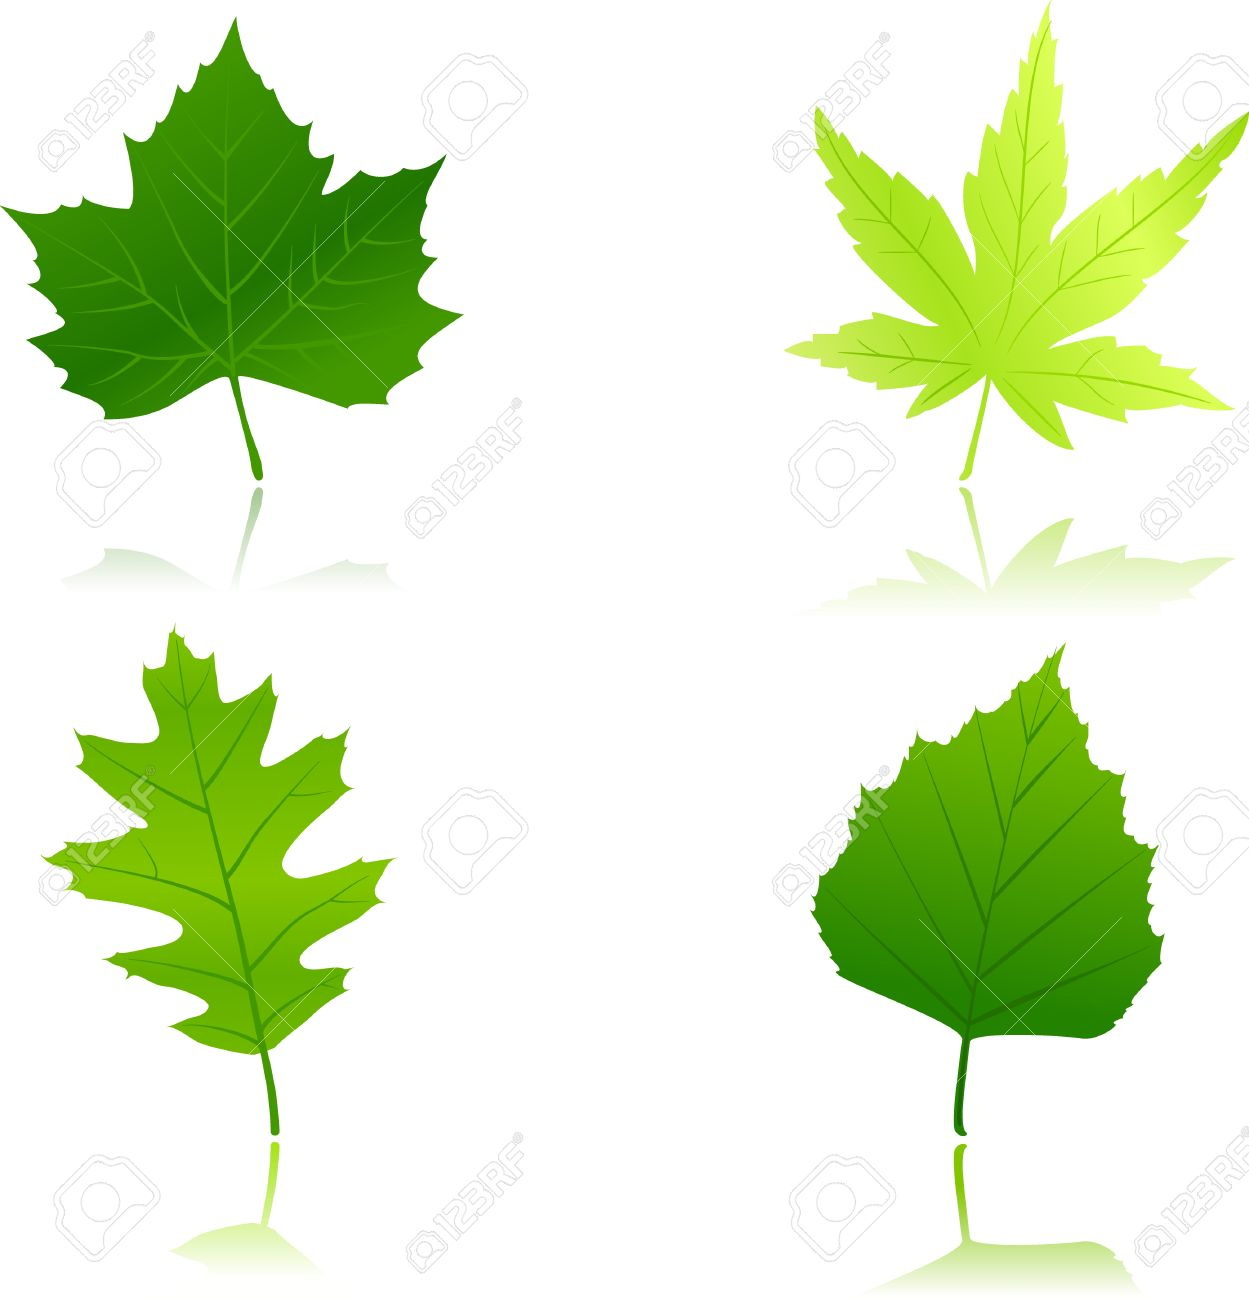 Maple Leaf vs Oak Leaf Maple Chestnut Oak And Beach